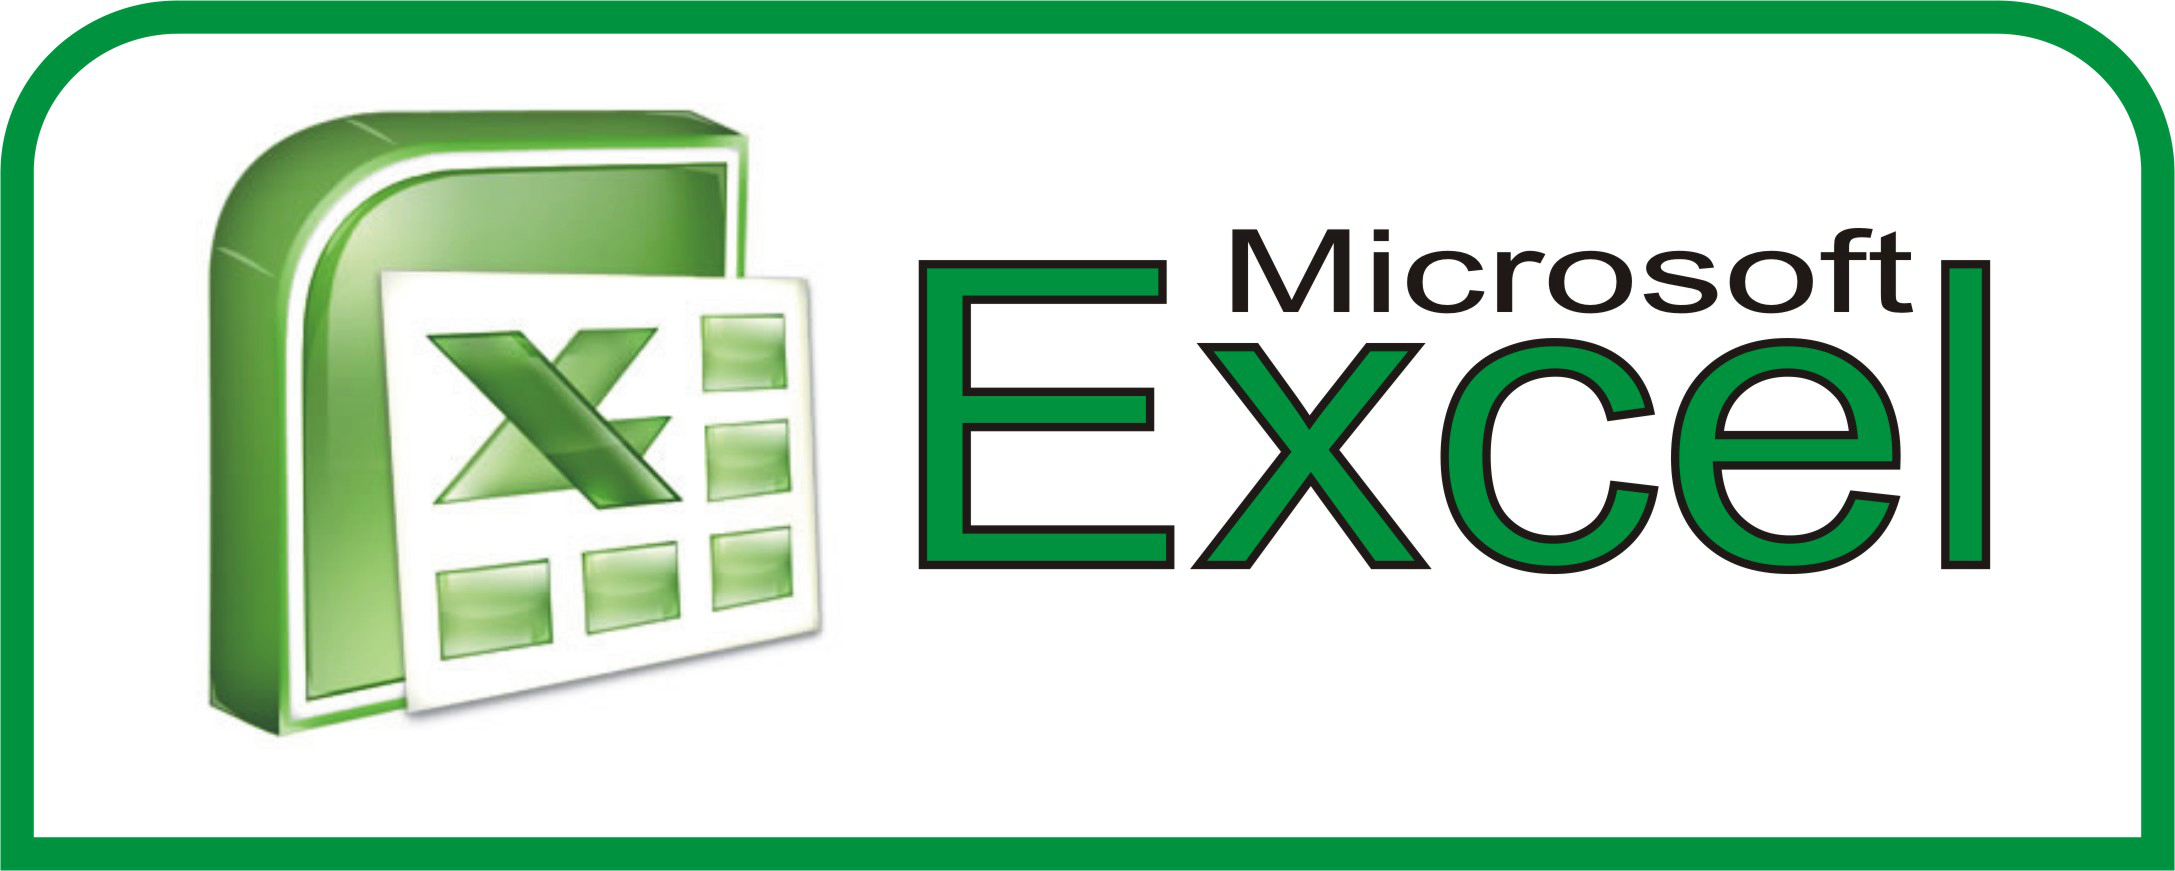 Ediblewildsus  Sweet  Excel Shortcuts You Probably Didnt Know About  Techdissected With Marvelous Excel Unlock Besides Rank Formula Excel Furthermore Create Excel Pivot Table With Cool Time Stamp In Excel Also Excel Vba Solver In Addition Auto Loan Calculator Excel And Opening Multiple Excel Windows As Well As Bypass Excel Password Additionally Excel Always Round Up From Techdissectedcom With Ediblewildsus  Marvelous  Excel Shortcuts You Probably Didnt Know About  Techdissected With Cool Excel Unlock Besides Rank Formula Excel Furthermore Create Excel Pivot Table And Sweet Time Stamp In Excel Also Excel Vba Solver In Addition Auto Loan Calculator Excel From Techdissectedcom